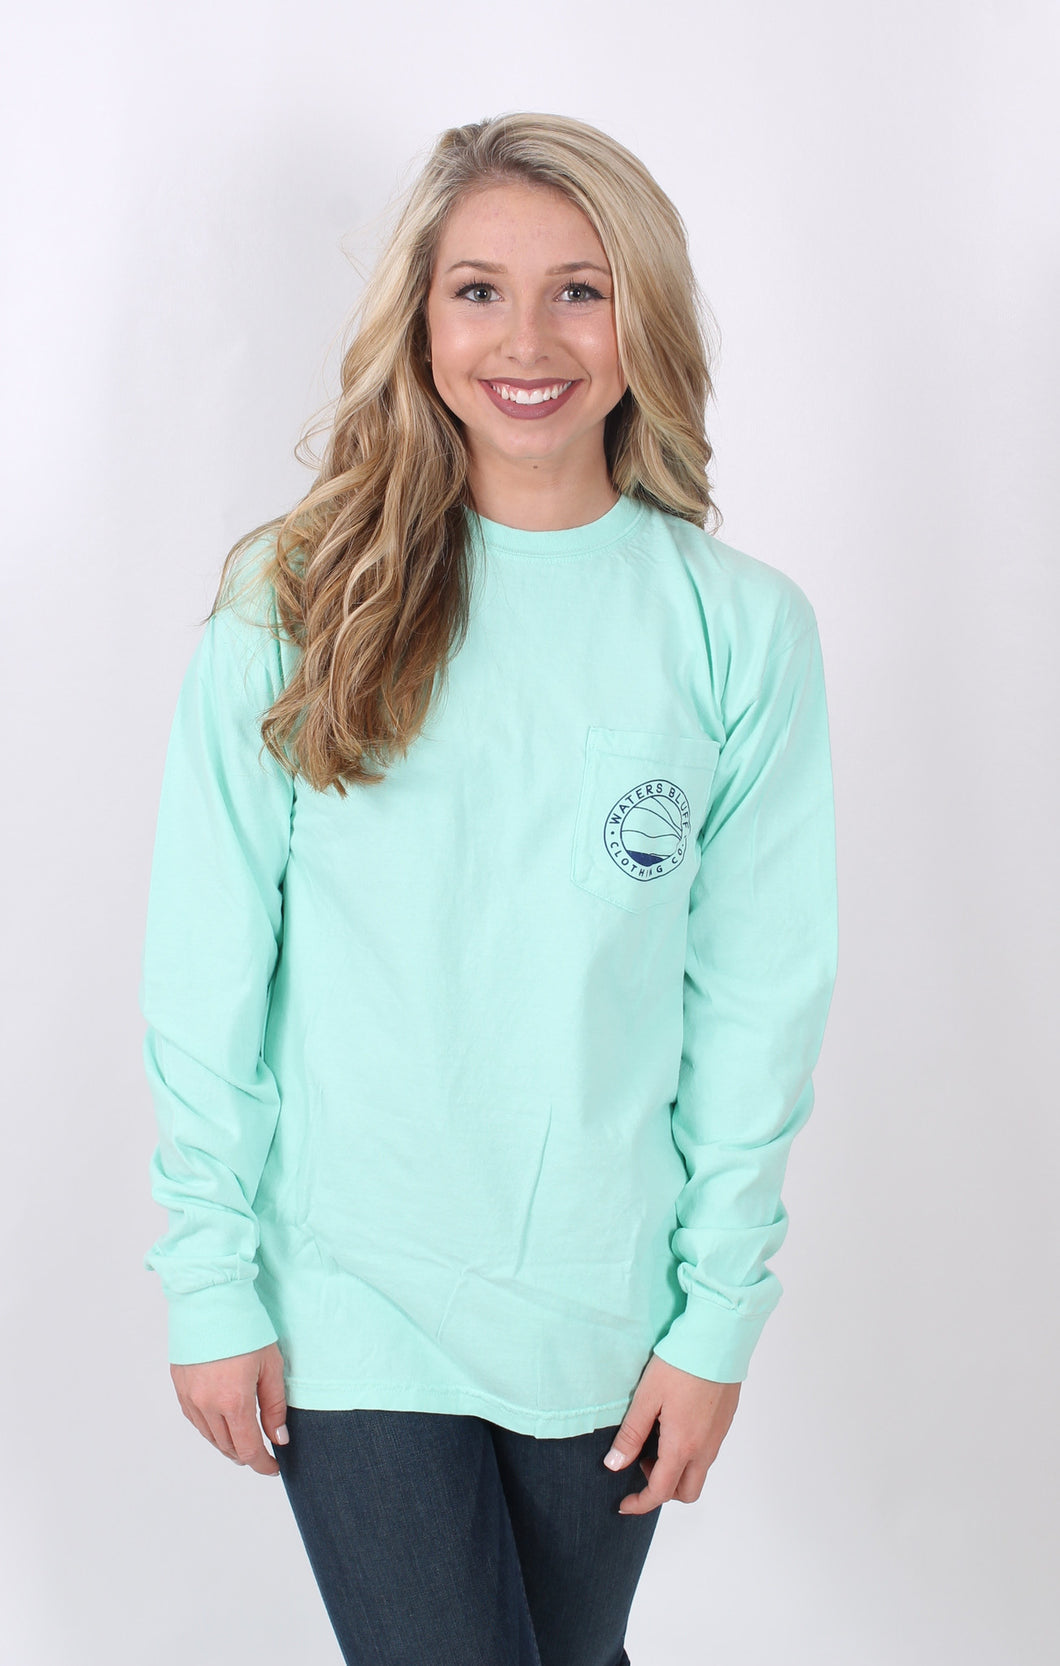 Island Reef L/S- Waters Bluff Long Sleeve Tee Front